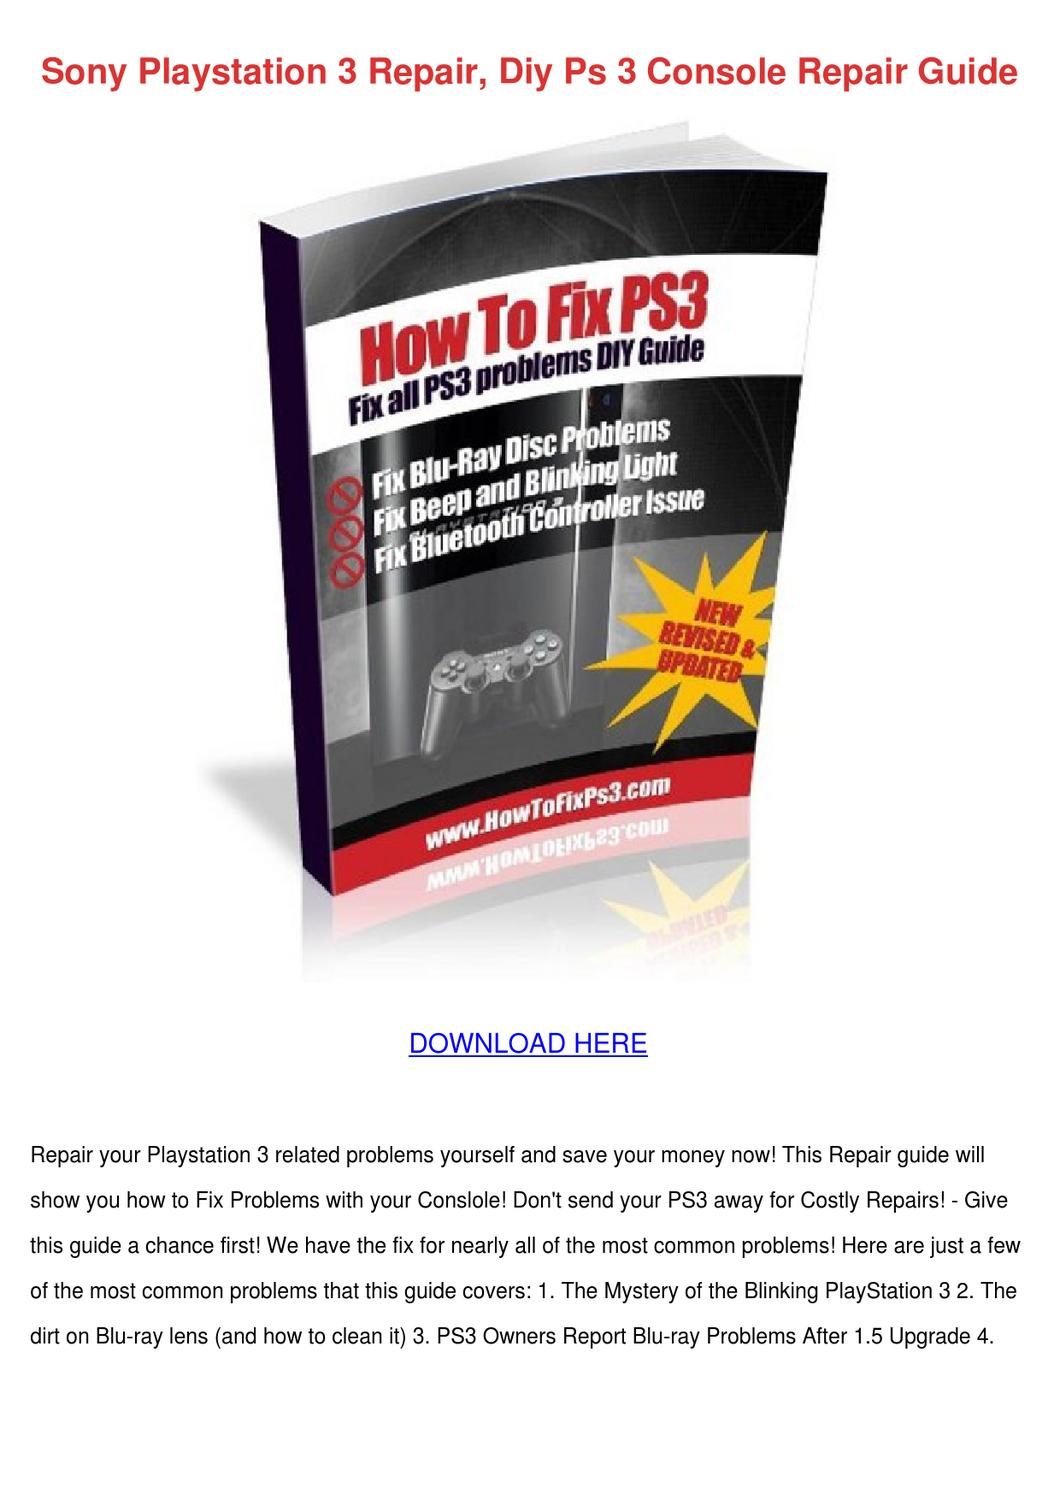 Sony Playstation 3 Repair Diy Ps 3 Console Re by Victor Massengale ...